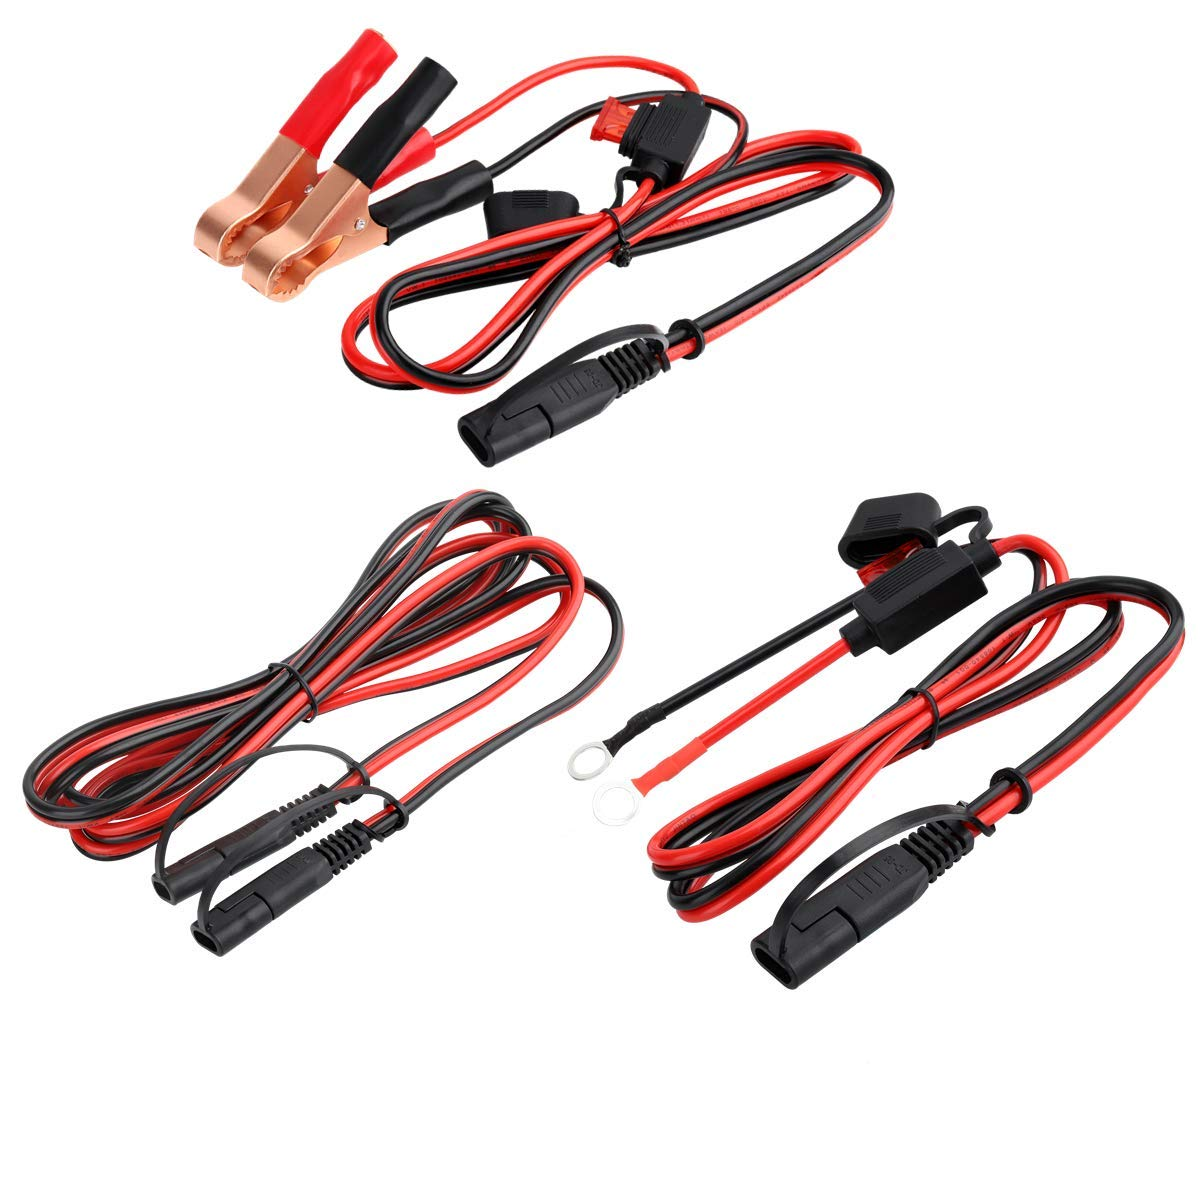 16 Gauge SAE Cable Battery Charger Kits,12 V SAE to SAE 2 Pin Connect Harness,SAE to Battery Alligator Clip Quick Disconnect Release Adapter, SAE to O Ring Terminal Extension Wire with Fuse (3 Pack) by muyimu